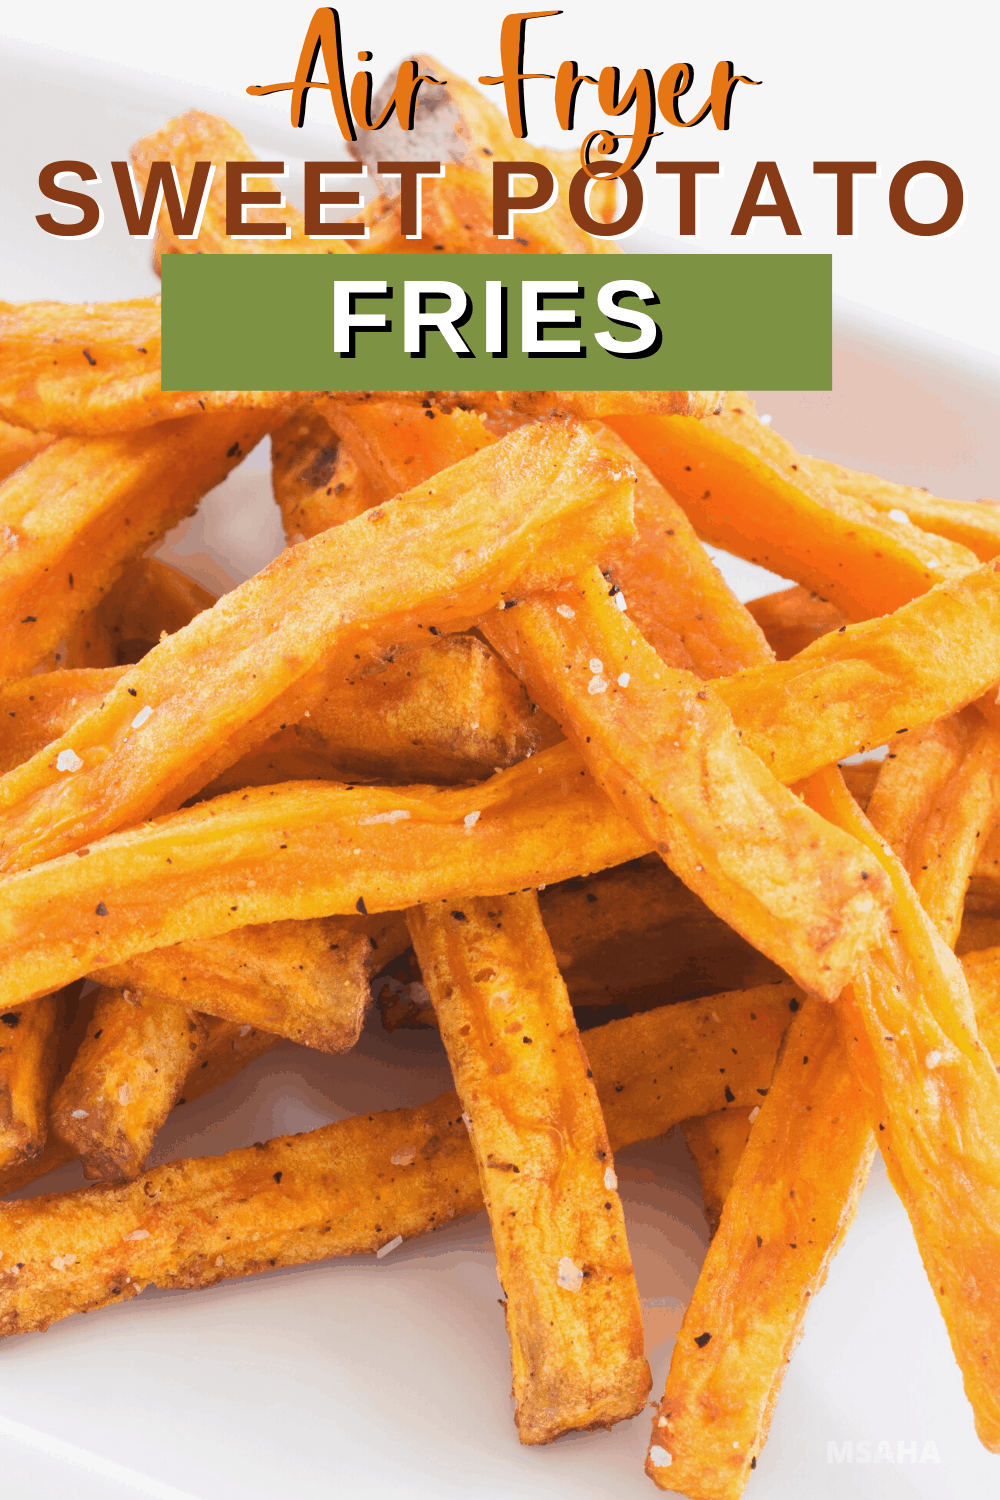 You have to try this air fryer sweet potato fries and marshmallow dipping sauce as soon as possible! Learn how simple and delicious this recipe is today. via @mystayathome